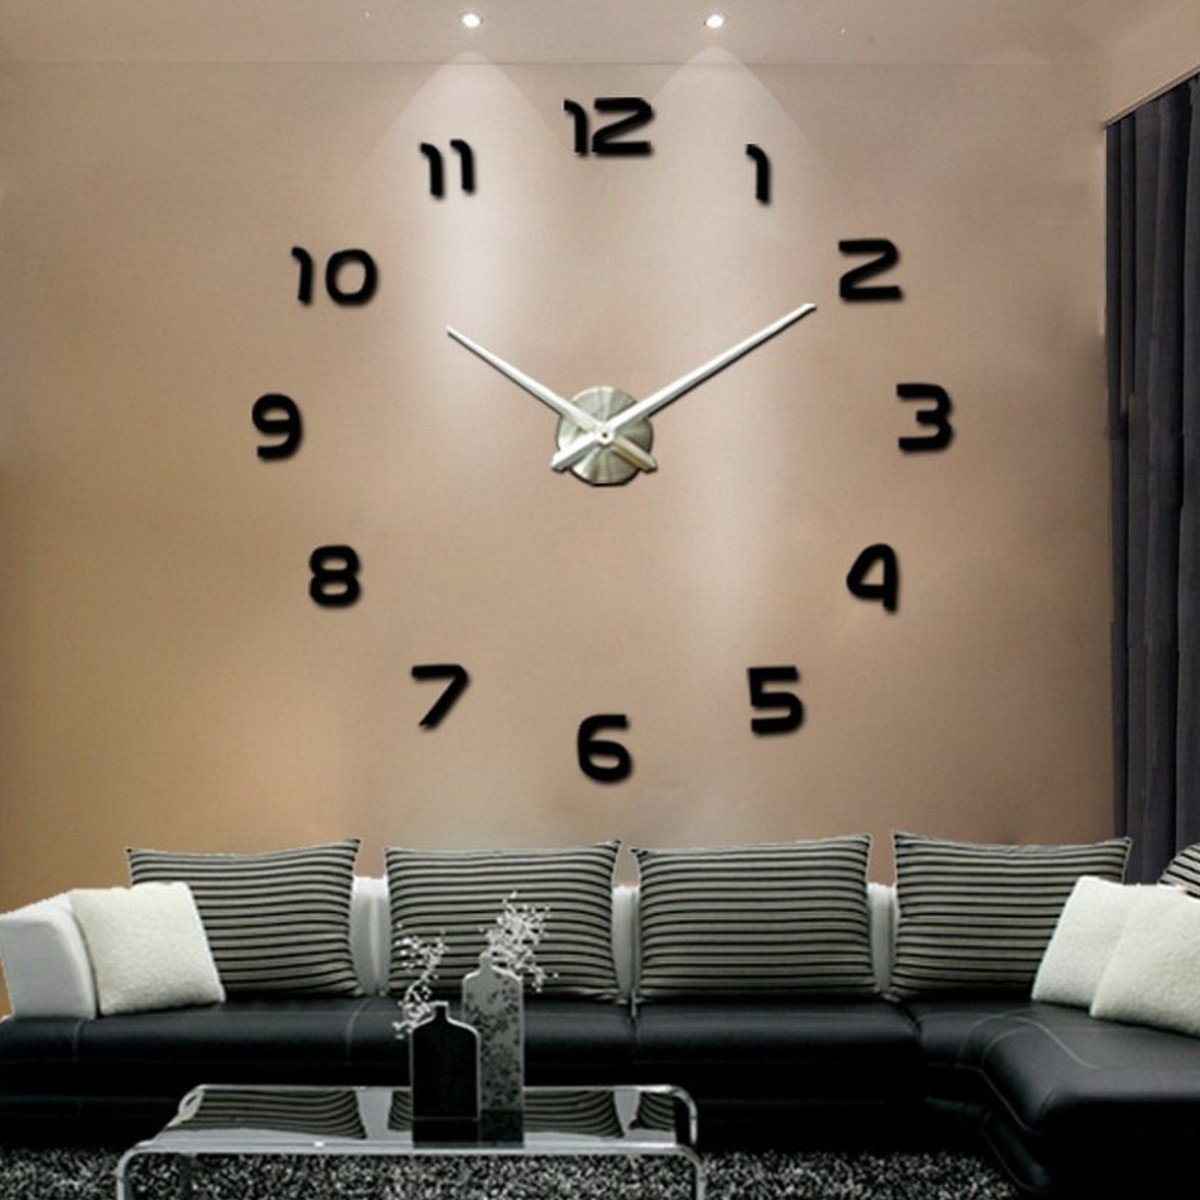 Large 3D Number Mirror Wall Sticker DIY Home Decor Big Watch Art Clock Wall Clock